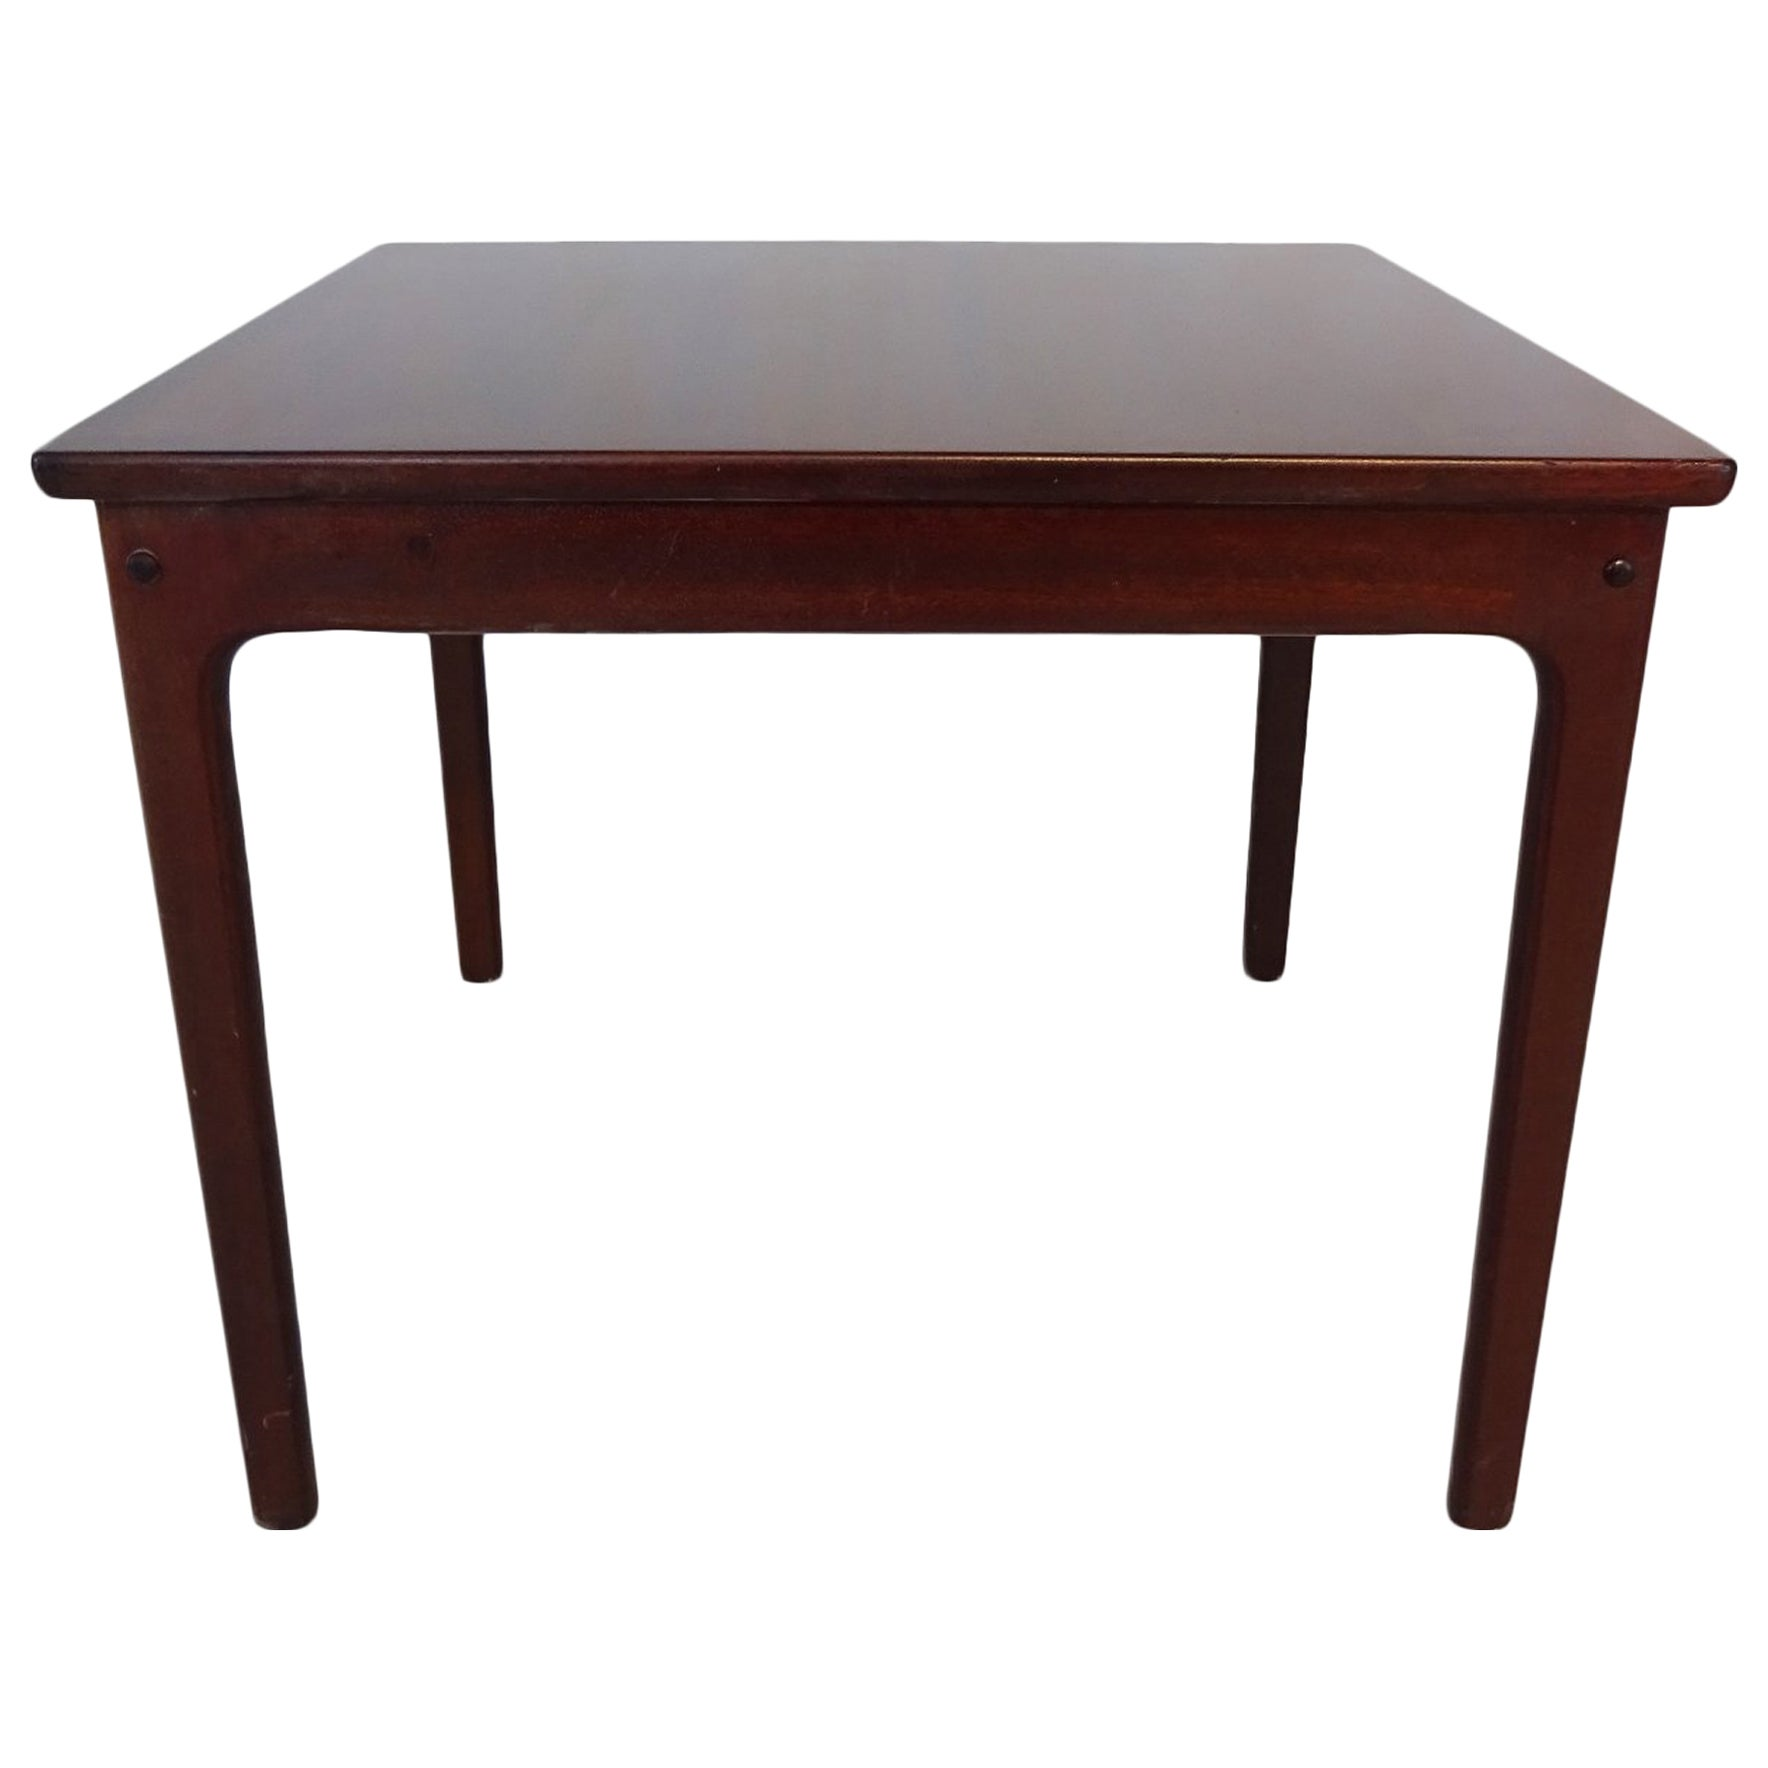 Danish Midcentury Coffee or Side Table by Ole Wanscher